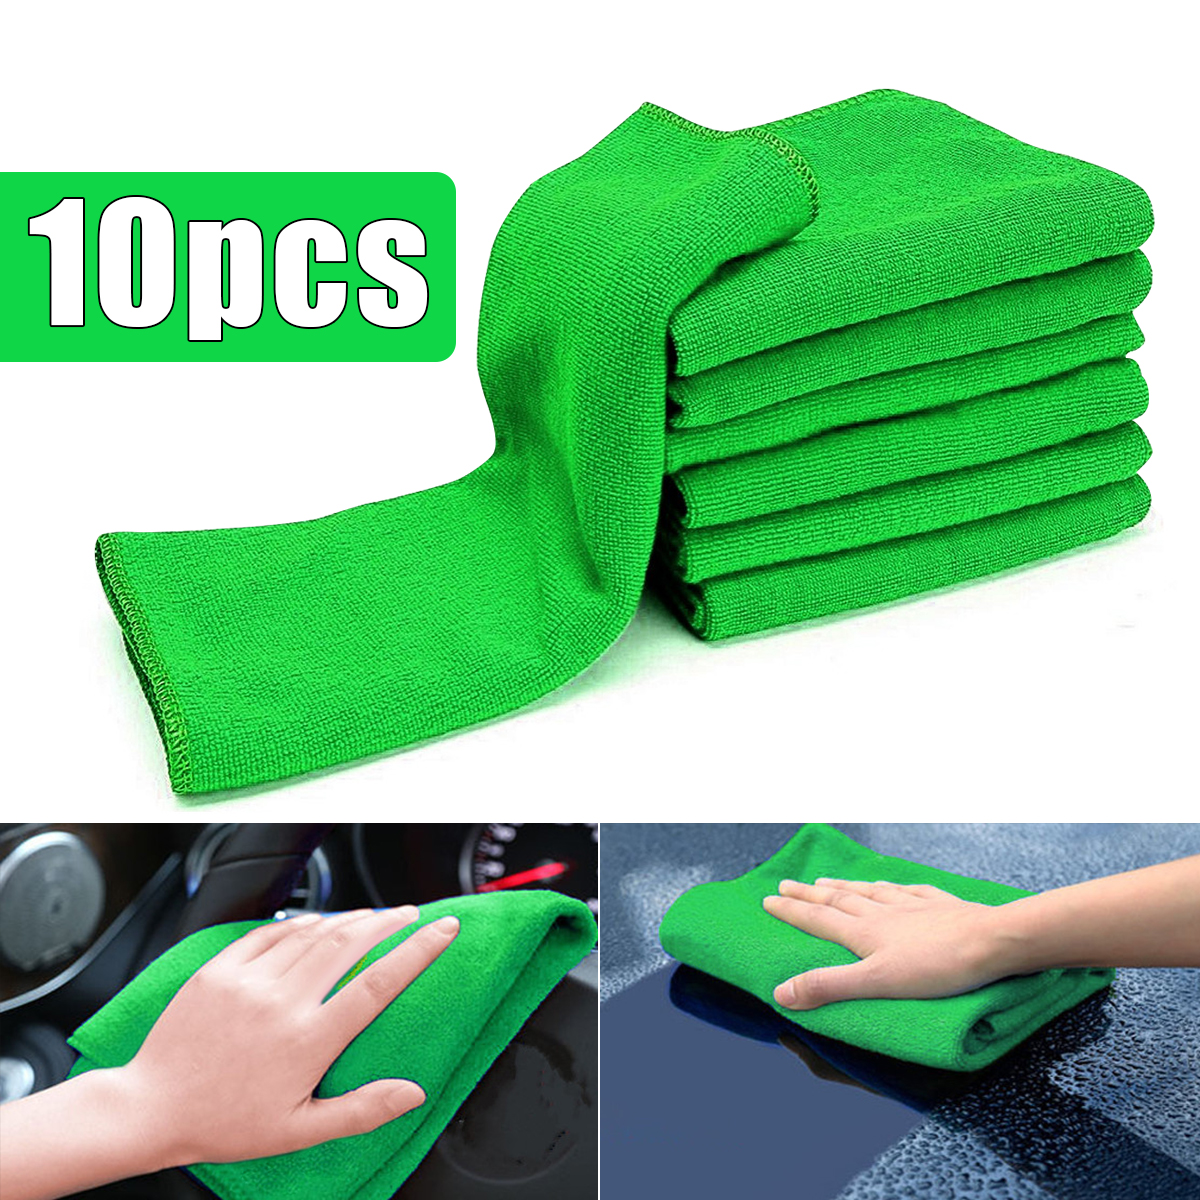 10Pcs Soft Cleaning Cloths Green Micro Fiber Auto Car Care Detailing Auto Duster Towel 12'' x 12''